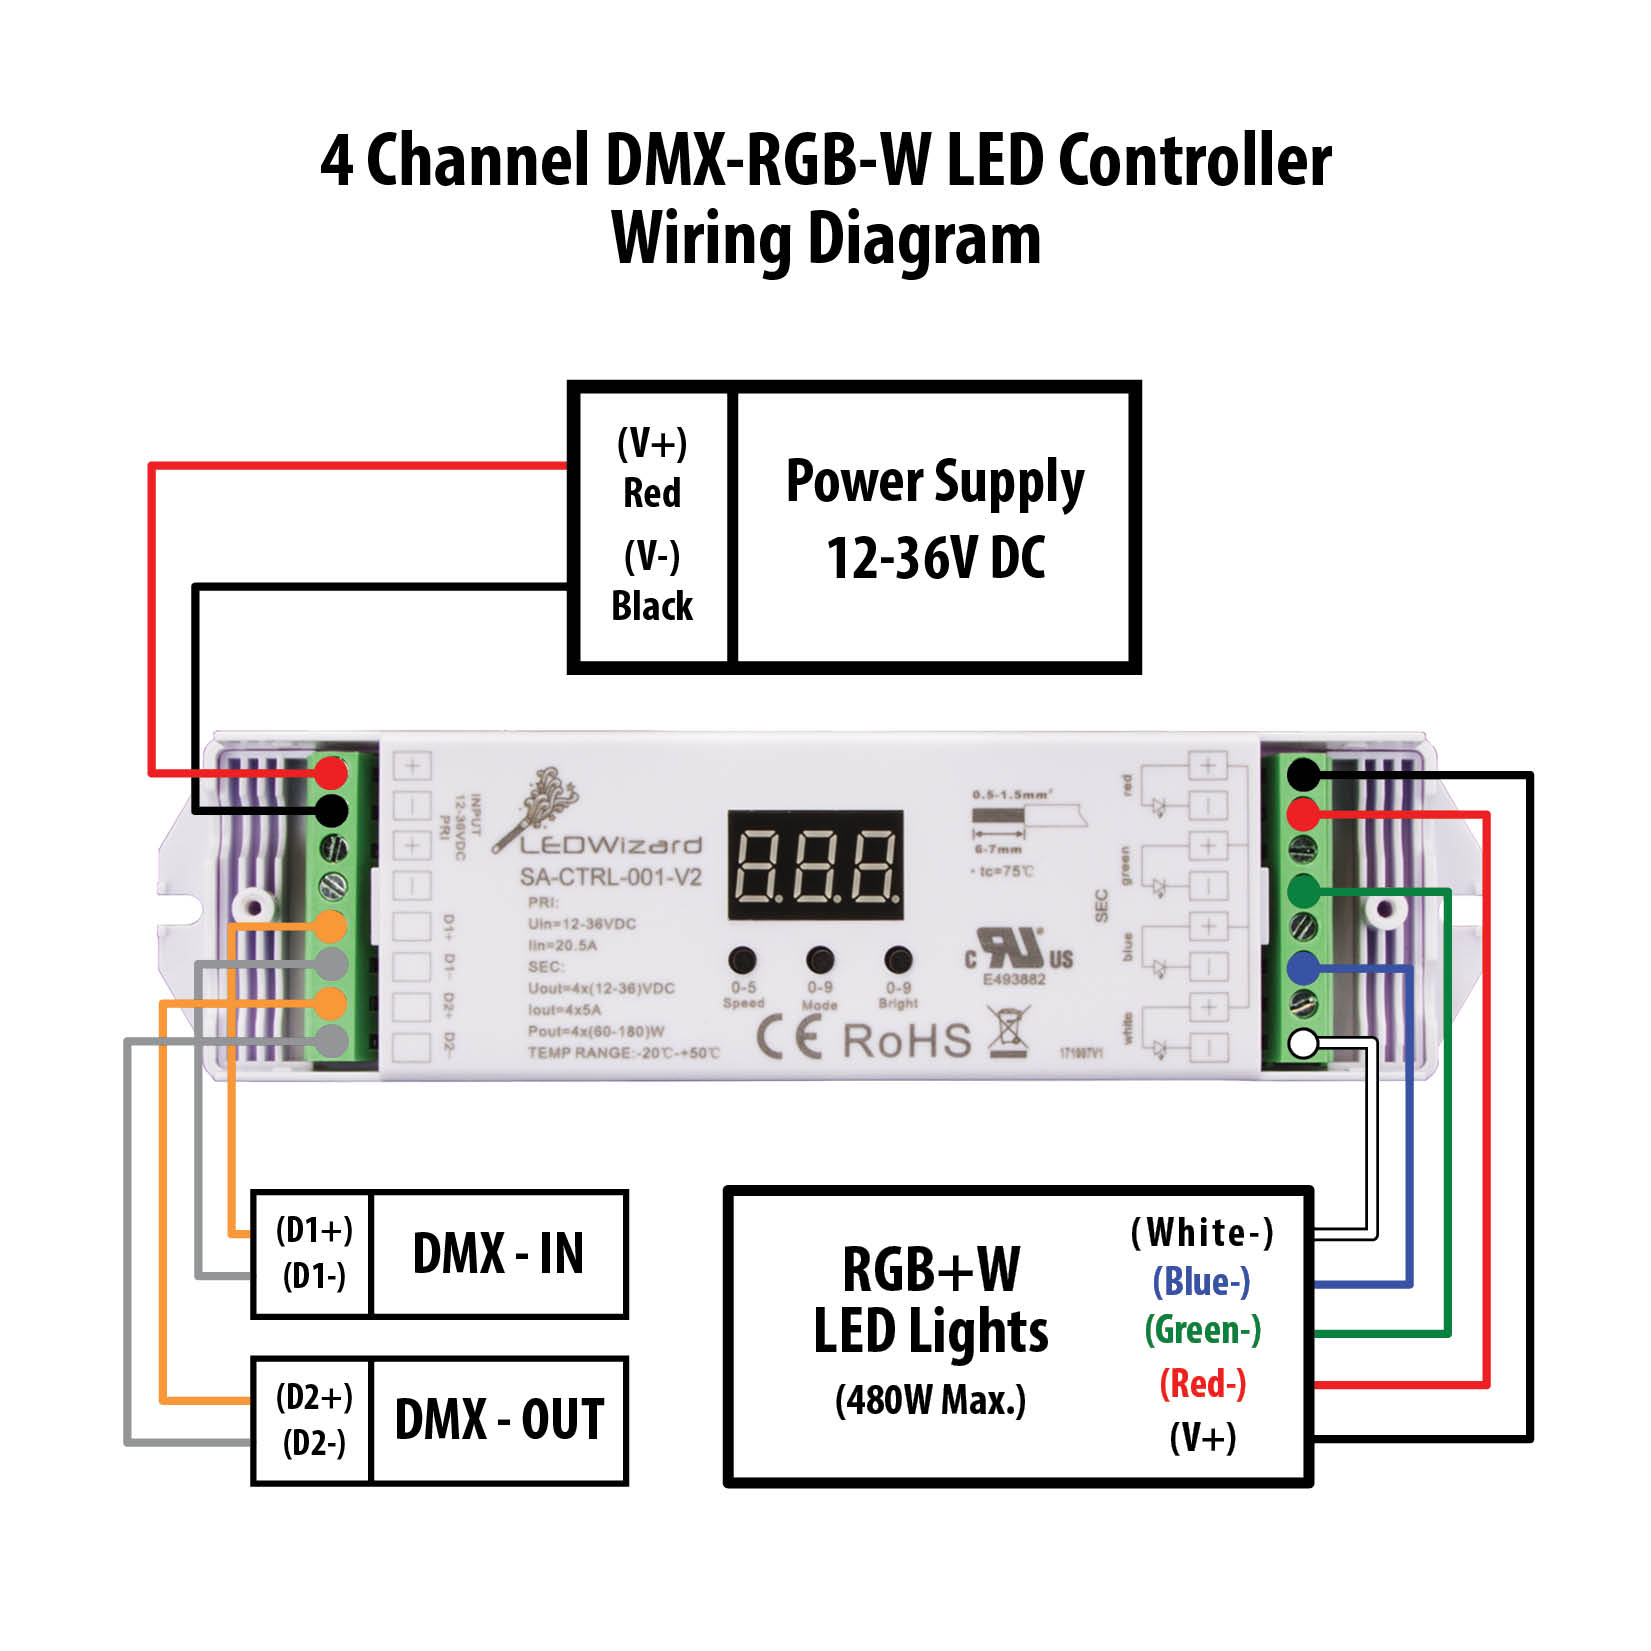 Simple Dmx Wiring Diagram All Kind Of Diagrams Led Light Wire 3 12 Volt Car 12v Odicis Pin A To 5